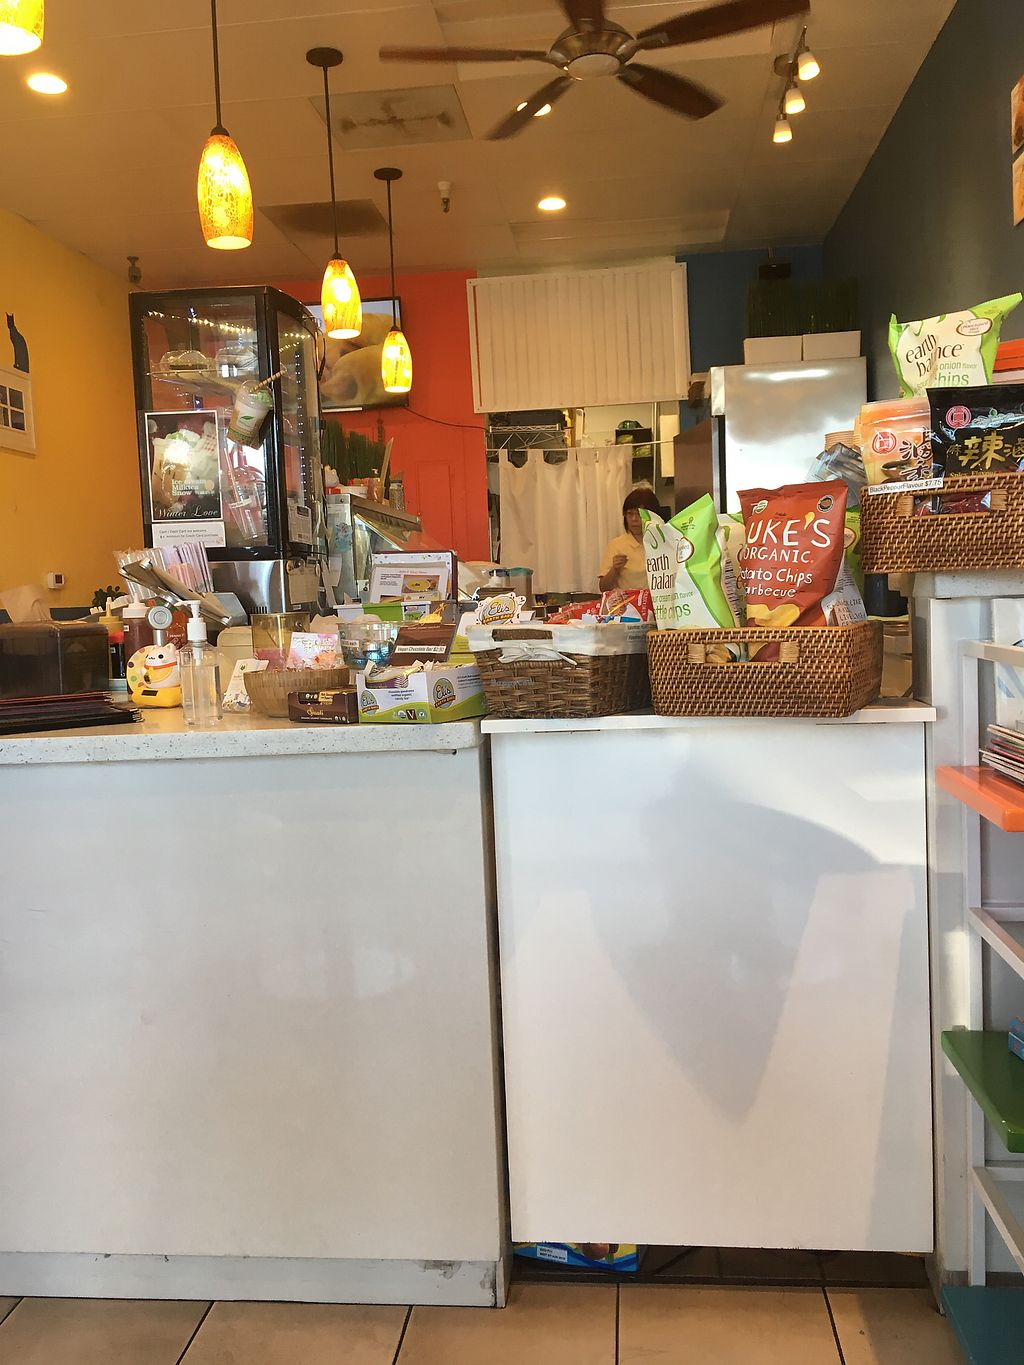 """Photo of Happiness Cafe  by <a href=""""/members/profile/Maganda"""">Maganda</a> <br/>Small space with great food.  <br/> October 7, 2017  - <a href='/contact/abuse/image/33481/312844'>Report</a>"""